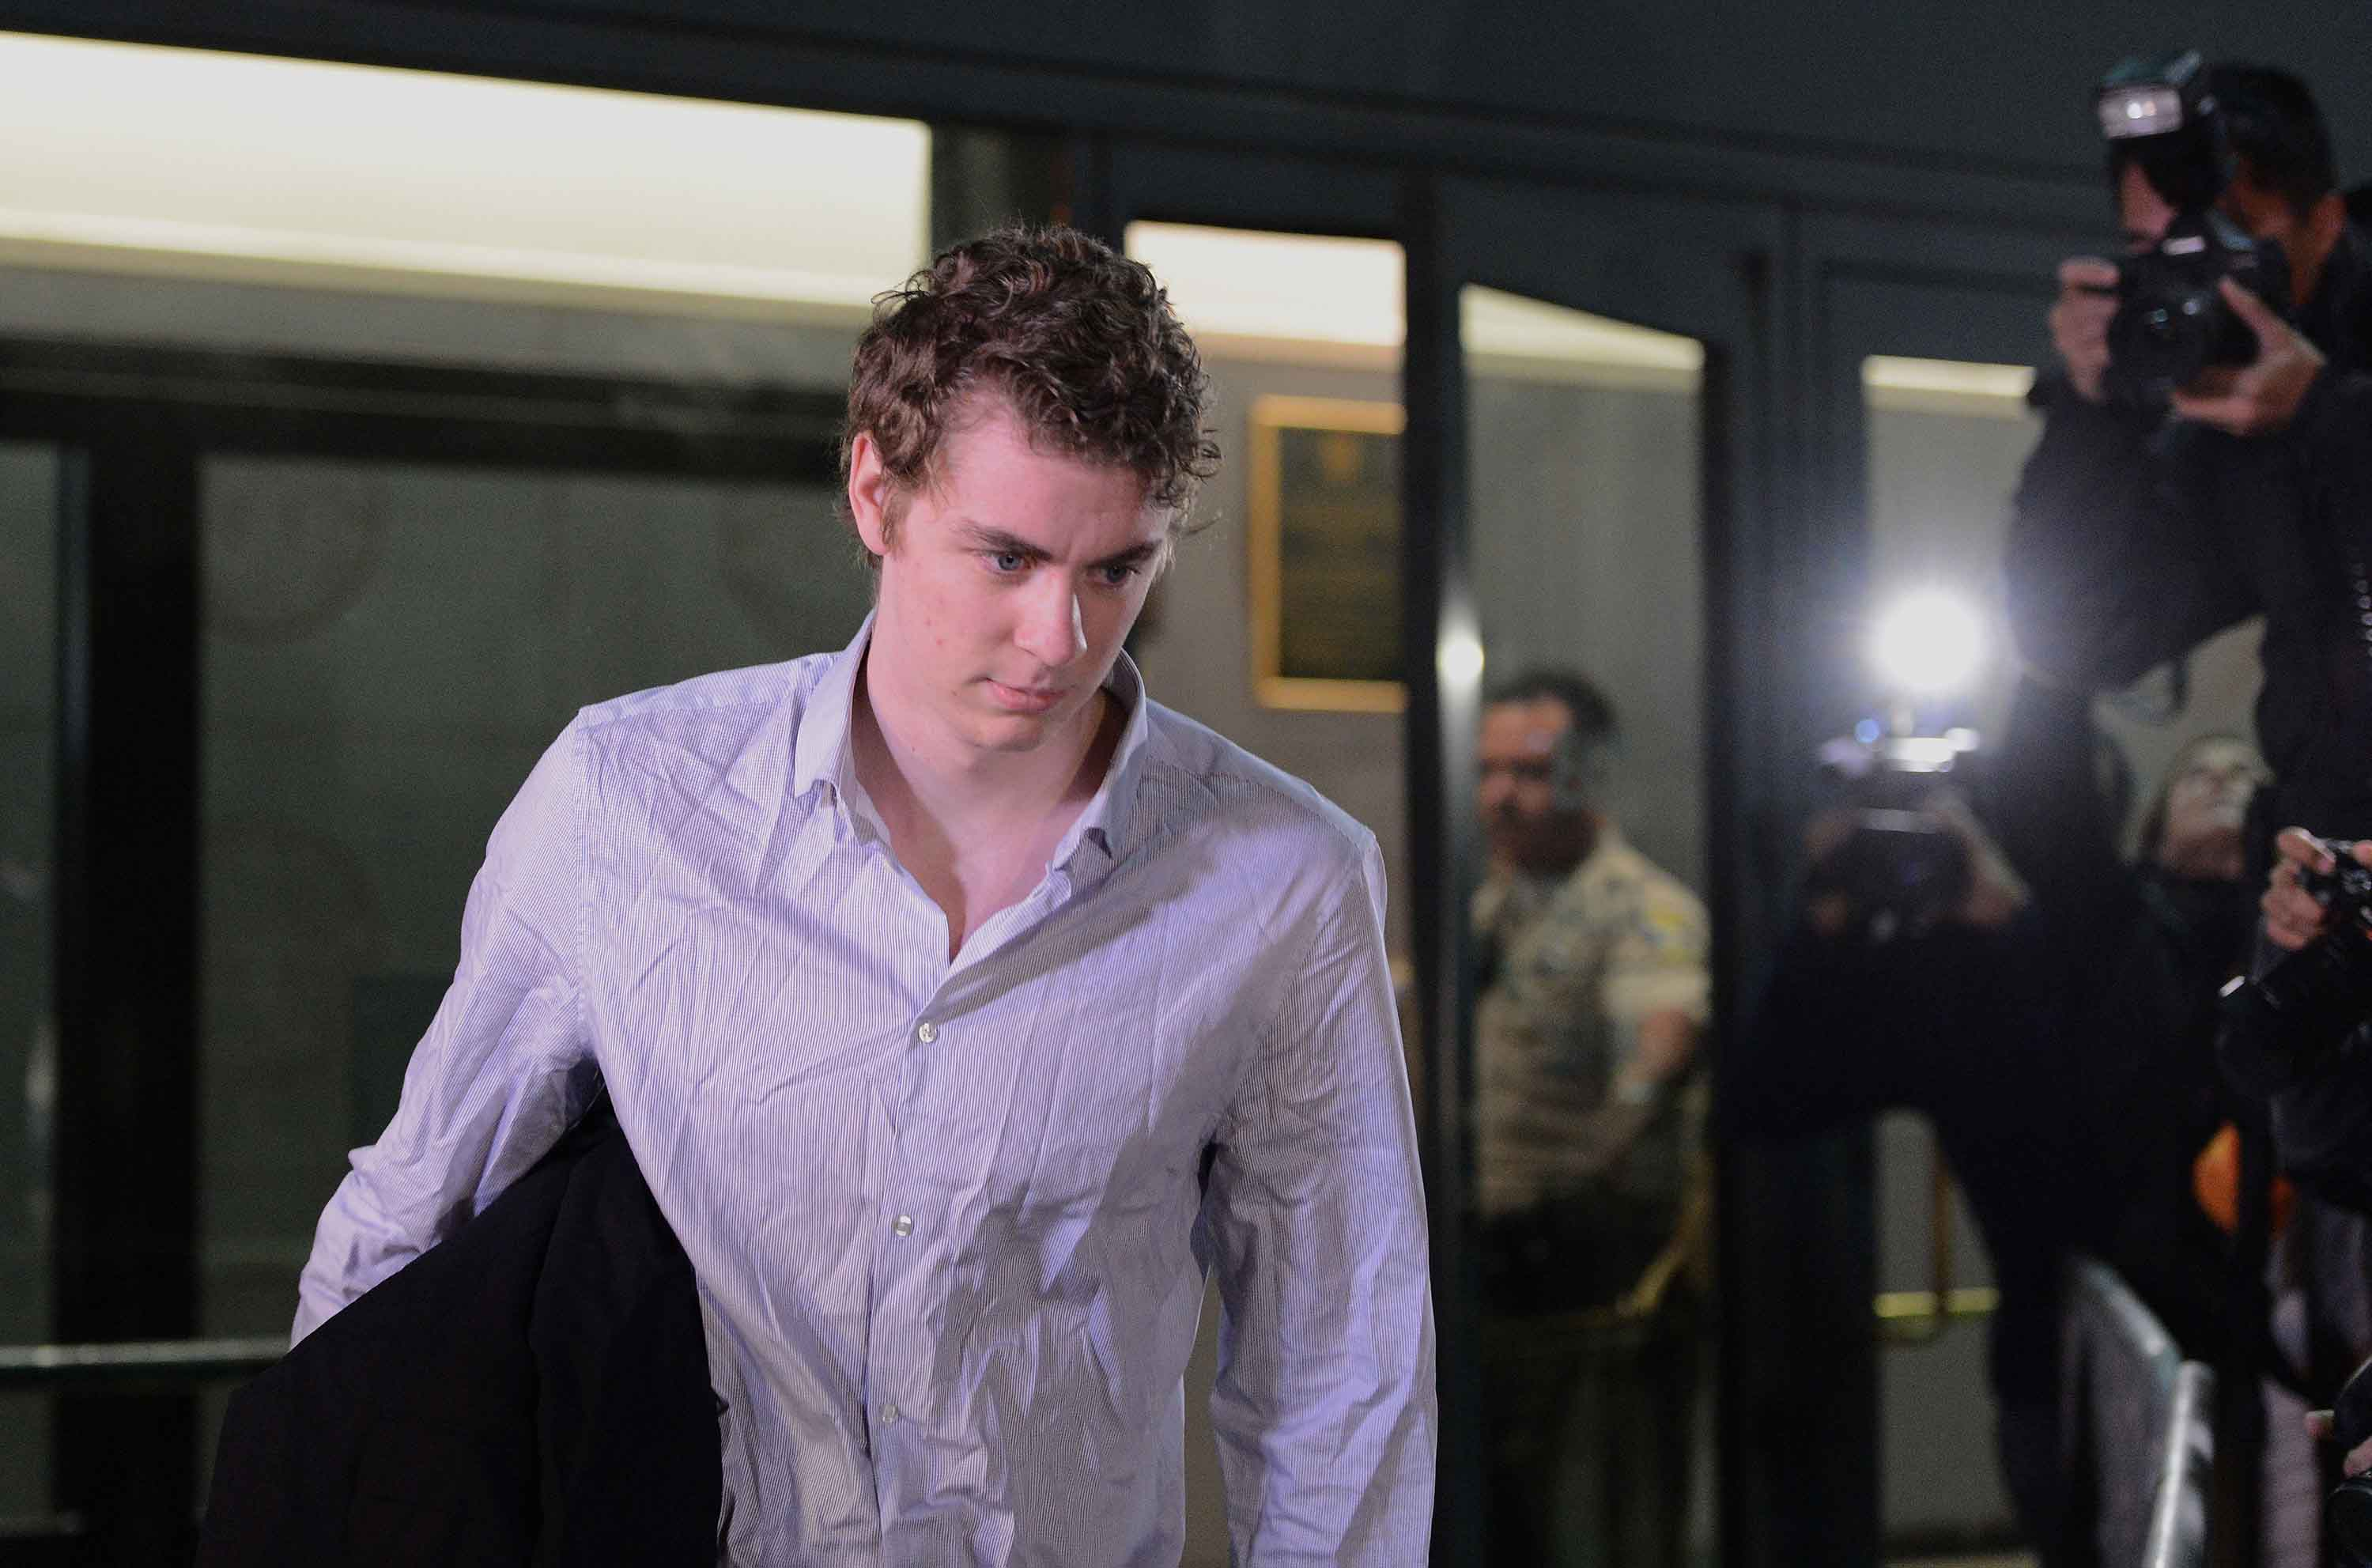 Brock Turner leaves the Santa Clara County Main Jail on Friday, Sept. 2, 2016 in San Jose, Calif. Turner was released after serving three months of his six month sentence for the sexual assault of an unconscious woman in January of 2015. The judge in the case, Aaron Persky, has come under fire for a sentence that many consider to be a slap on the wrist. (Dan Honda/Bay Area News Group/TNS)